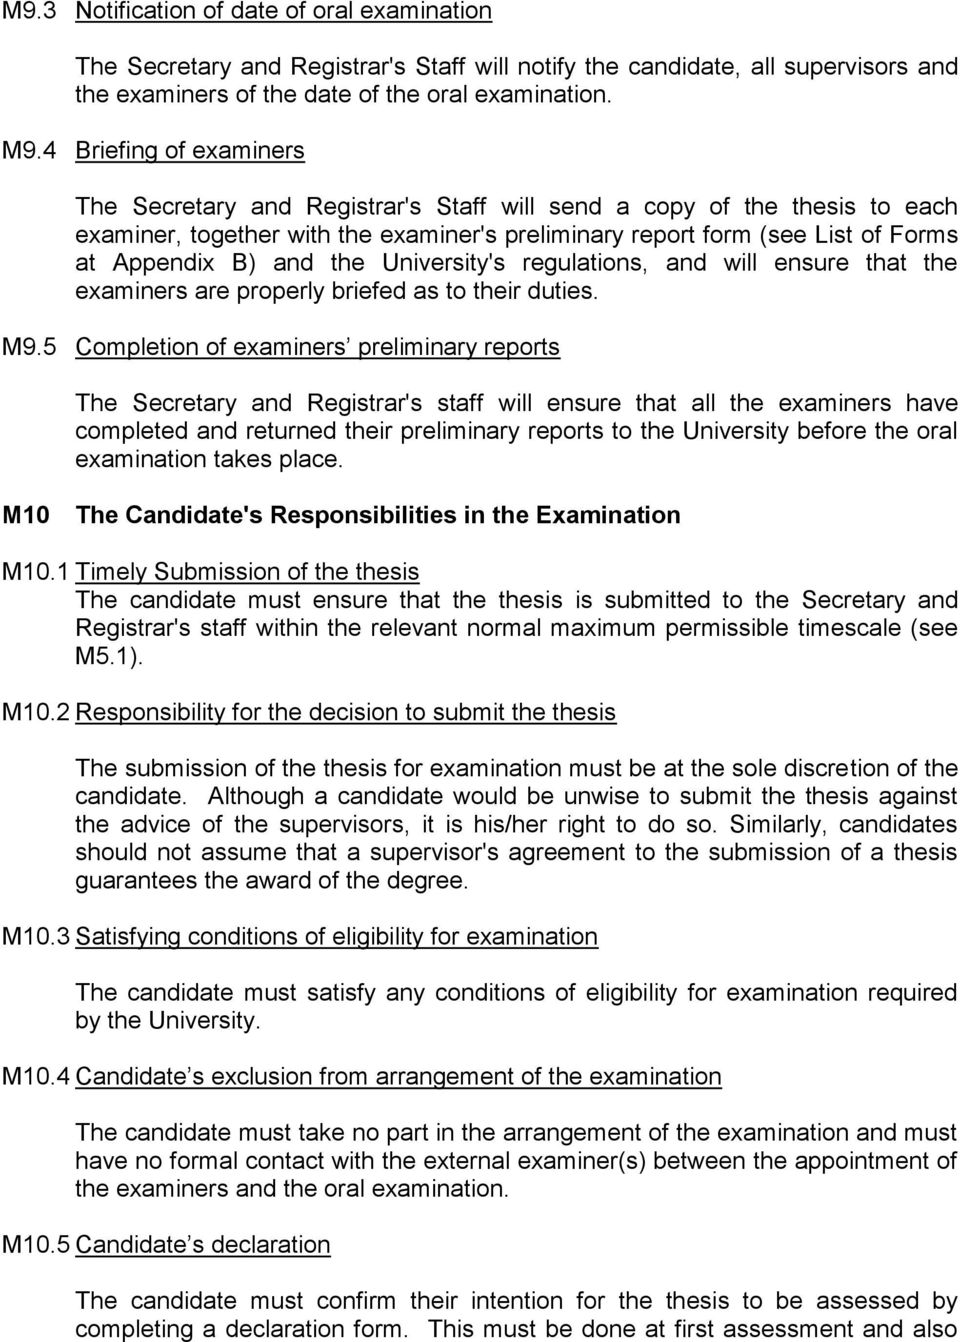 the University's regulations, and will ensure that the examiners are properly briefed as to their duties. M9.